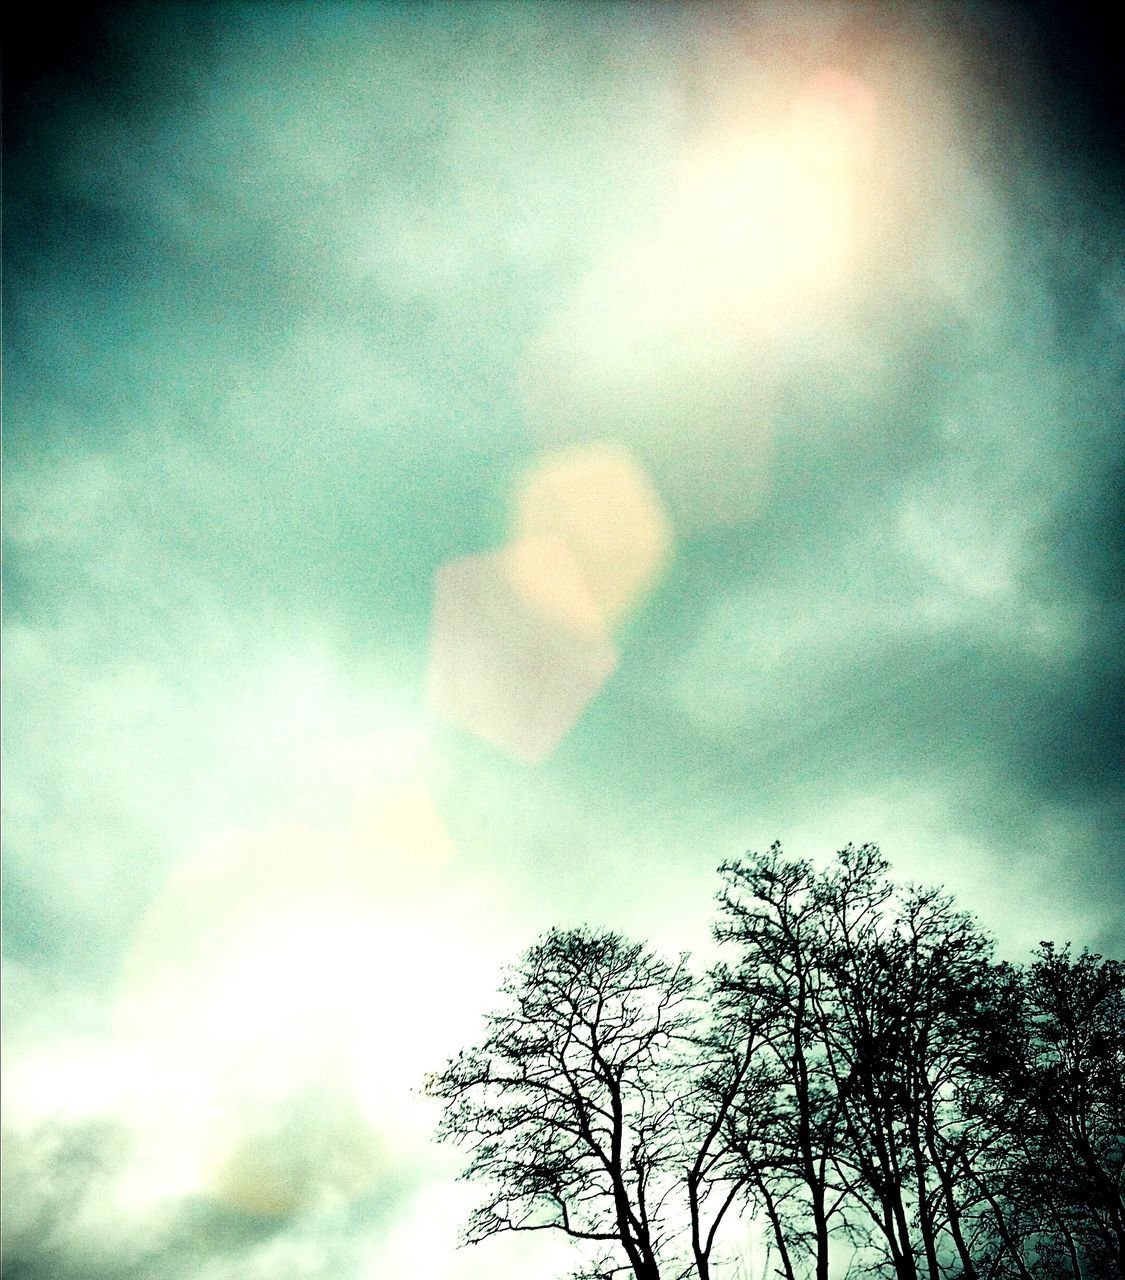 sky, low angle view, tree, cloud - sky, outdoors, day, nature, no people, beauty in nature